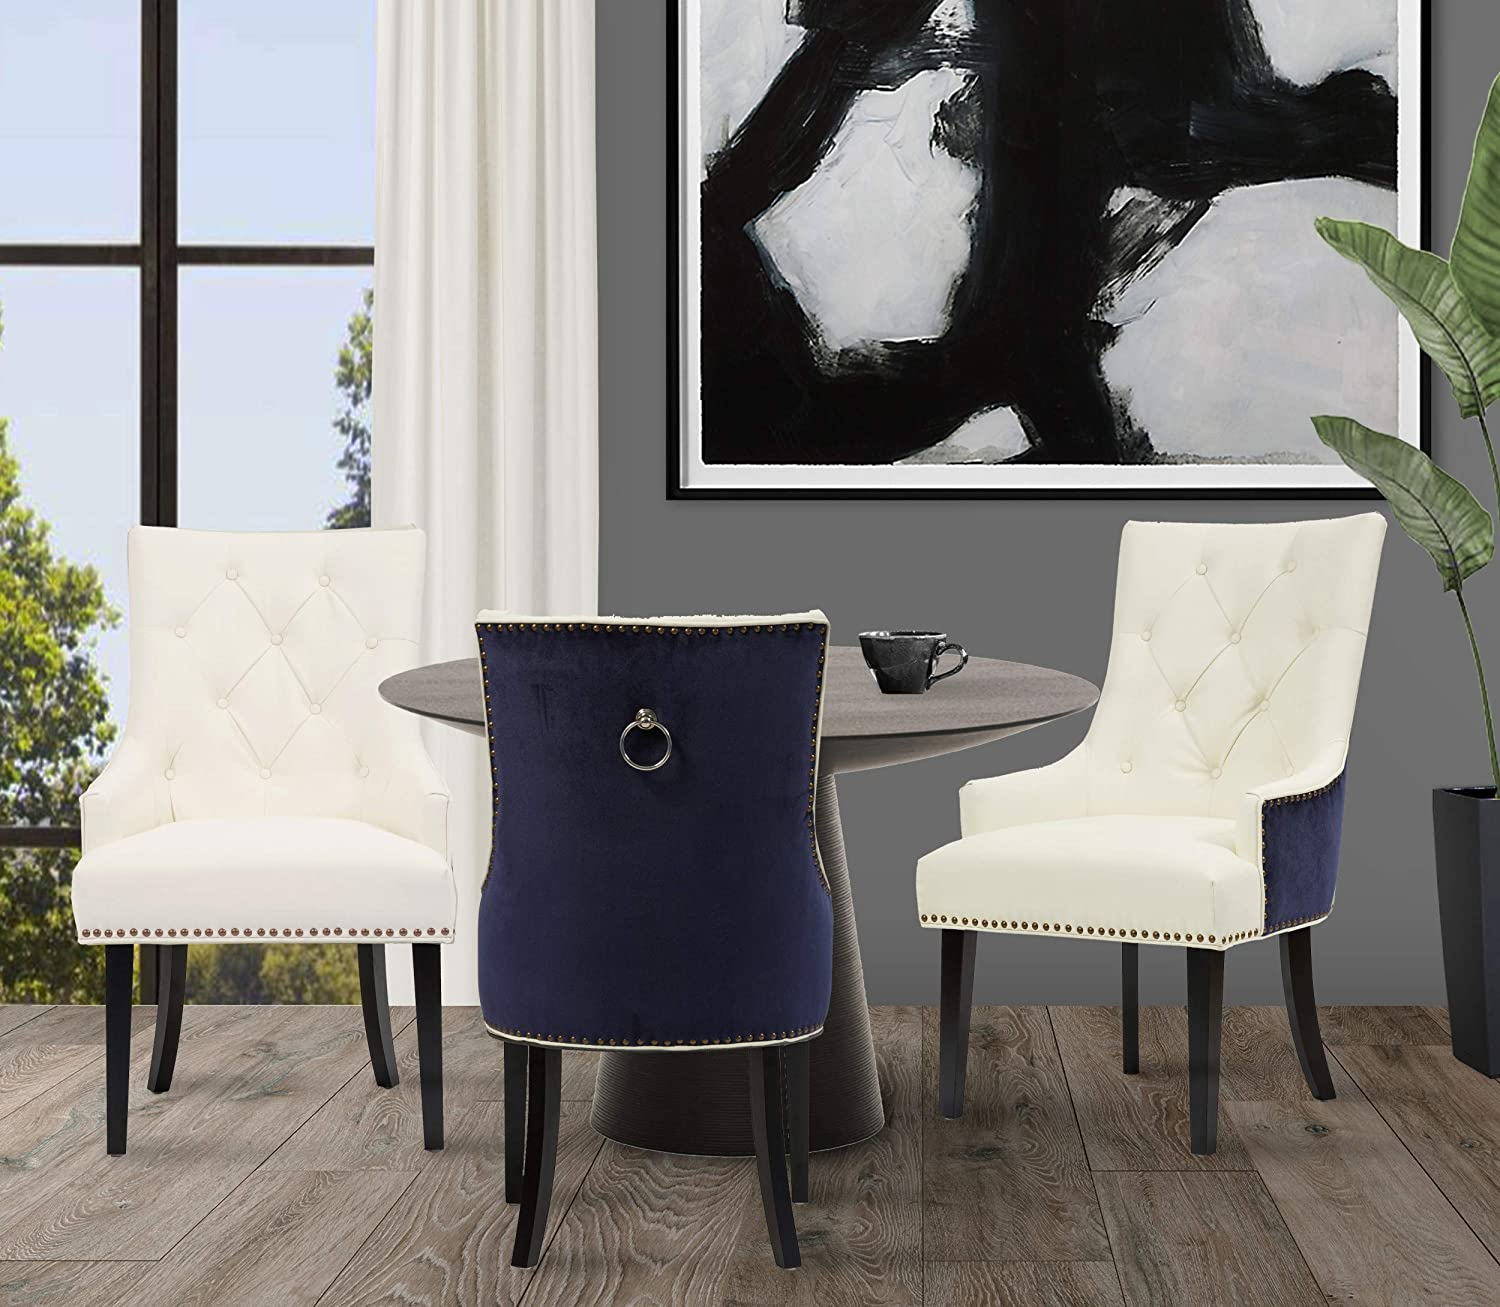 Iconic Home Cadence Dining Side Chair Button Tufted Pu Leather Velvet Polished Brass Nailheads Espresso Finished Wooden Legs Navy White Modern Transitional Chairs Amazon Com